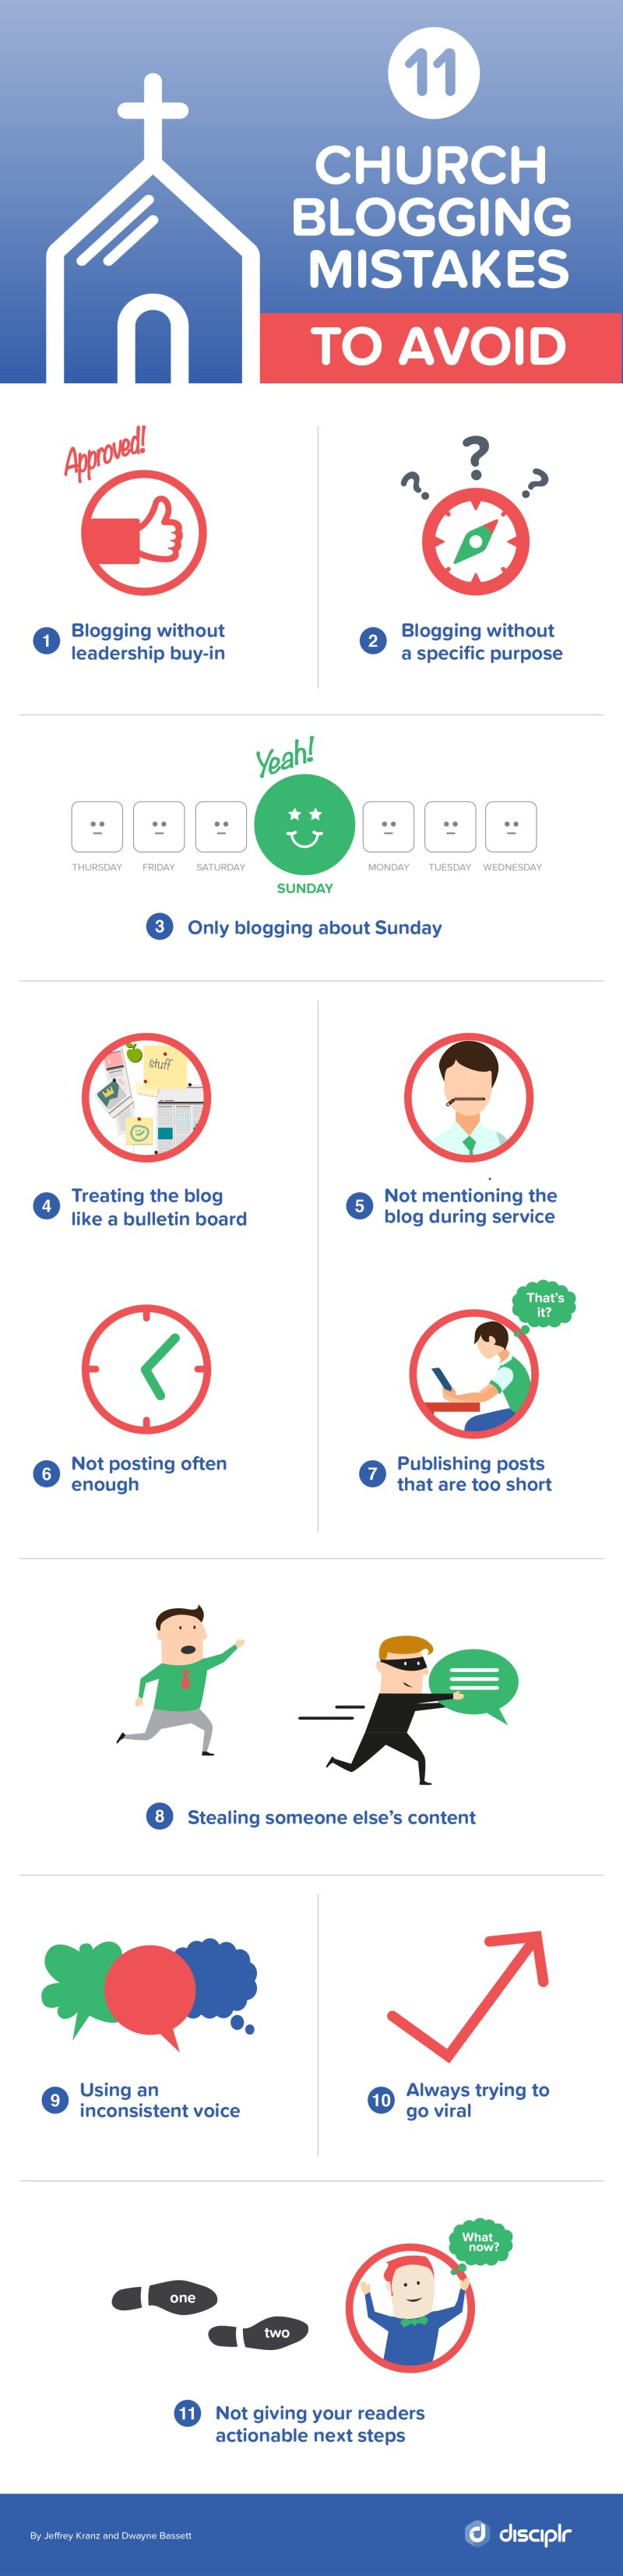 church-christian-blog-tips-mistakes.Infographic